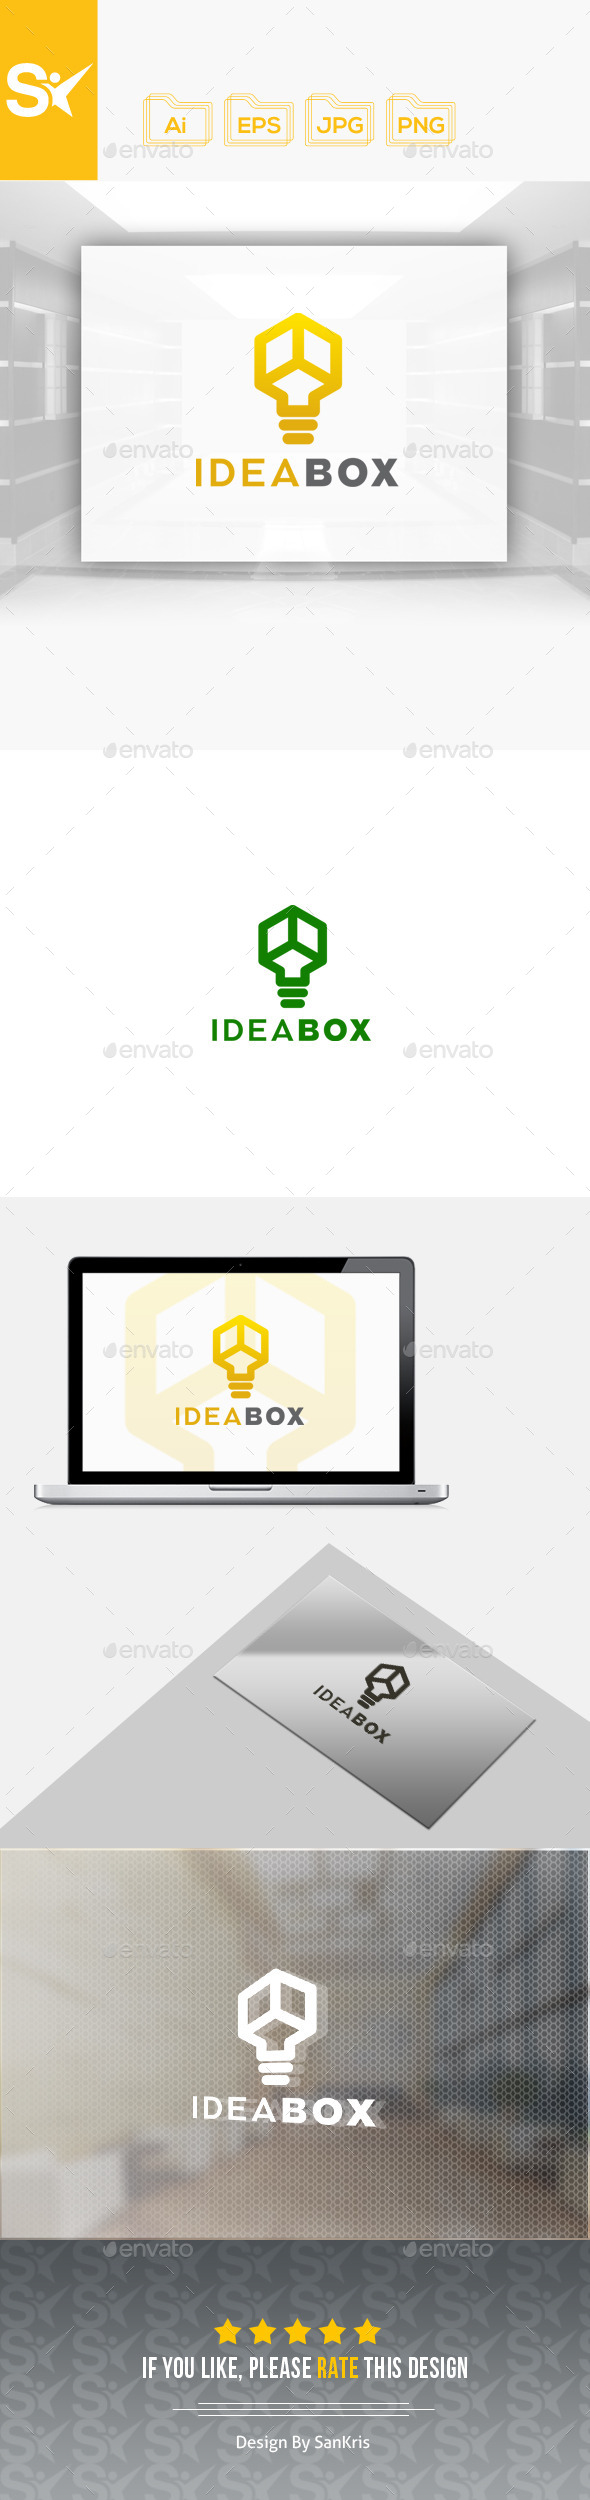 Idea Box Logo - Objects Logo Templates